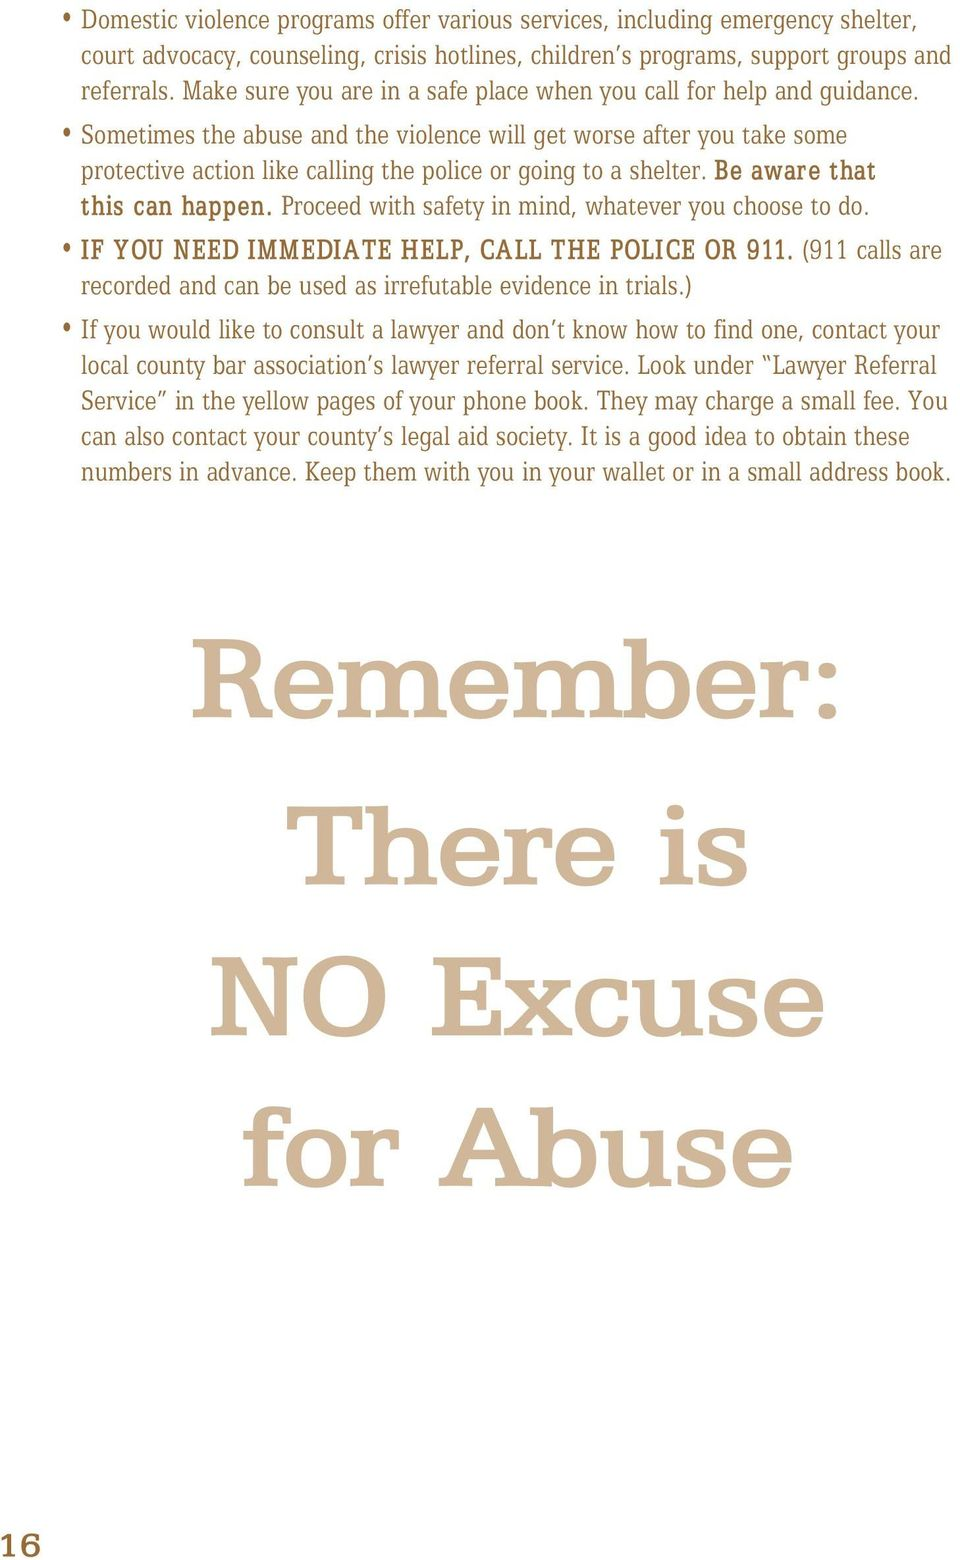 Sometimes the abuse and the violence will get worse after you take some protective action like calling the police or going to a shelter. Be aware that this can happen.